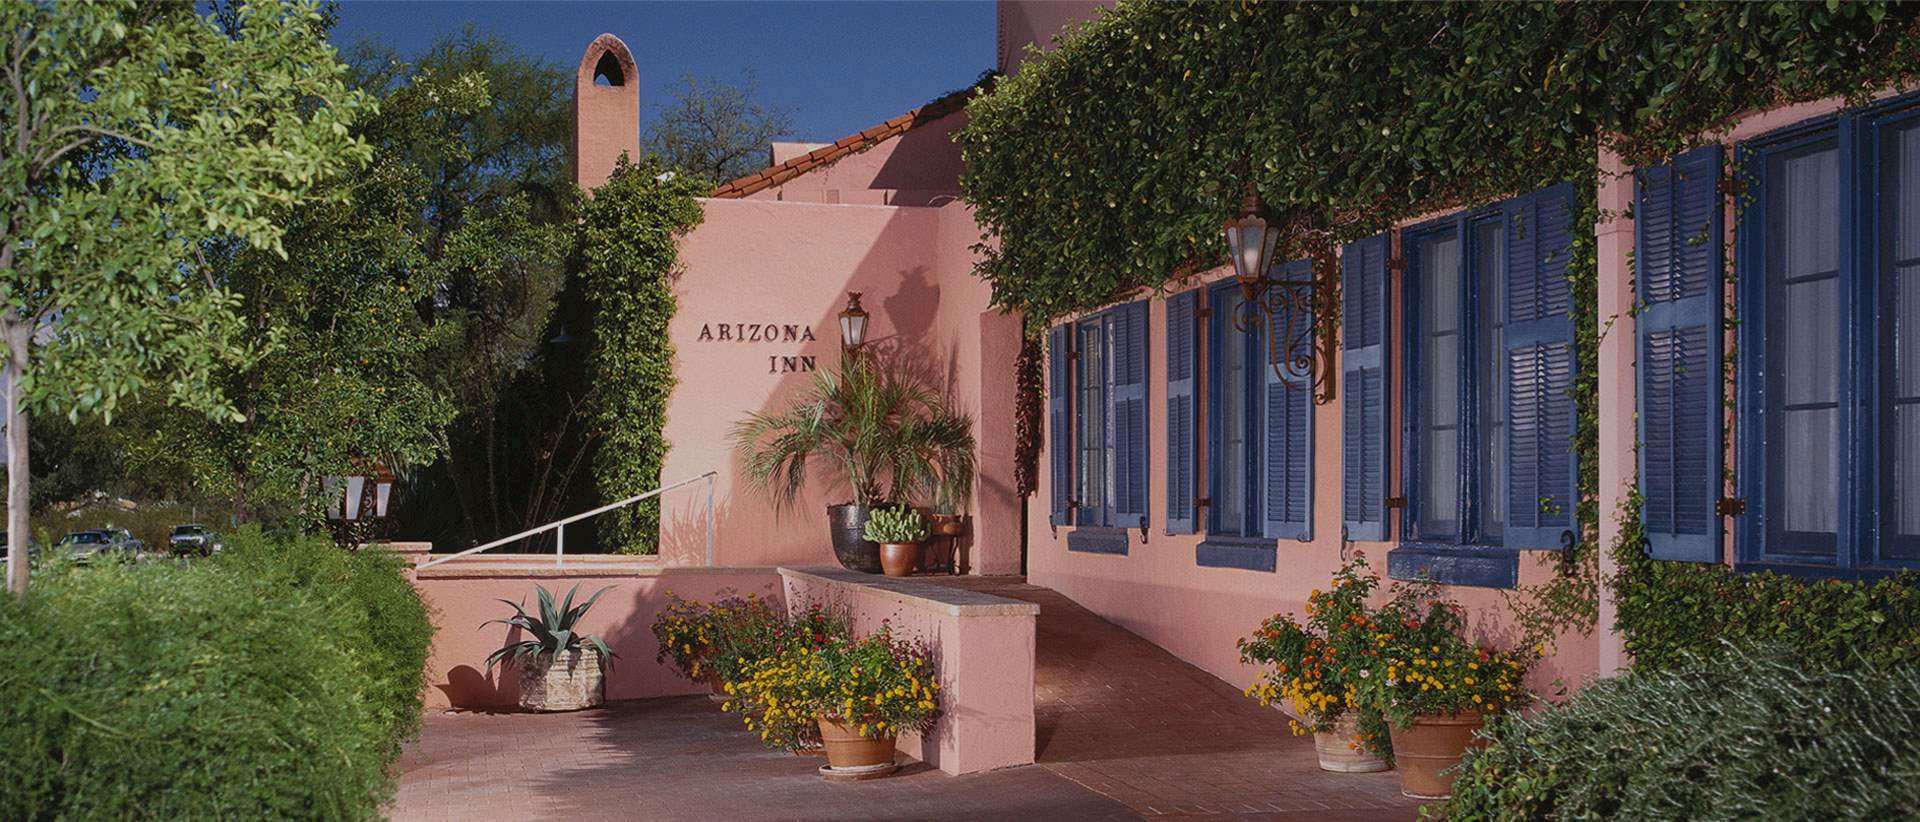 Arizona Inn, Tucson